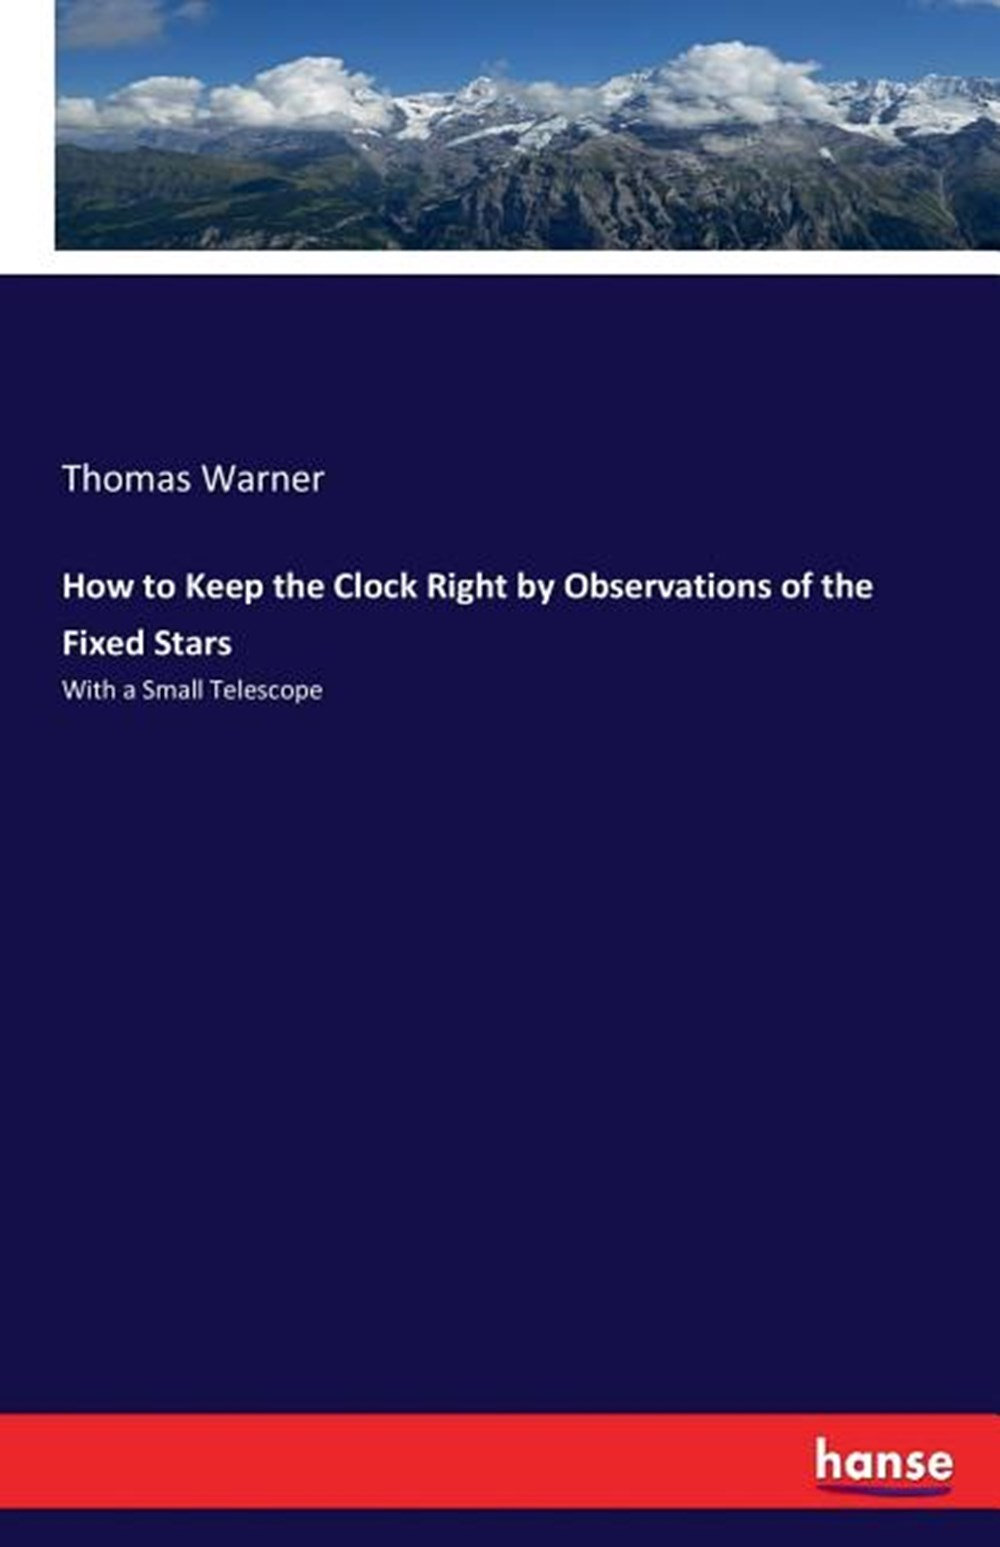 How to Keep the Clock Right by Observations of the Fixed Stars With a Small Telescope